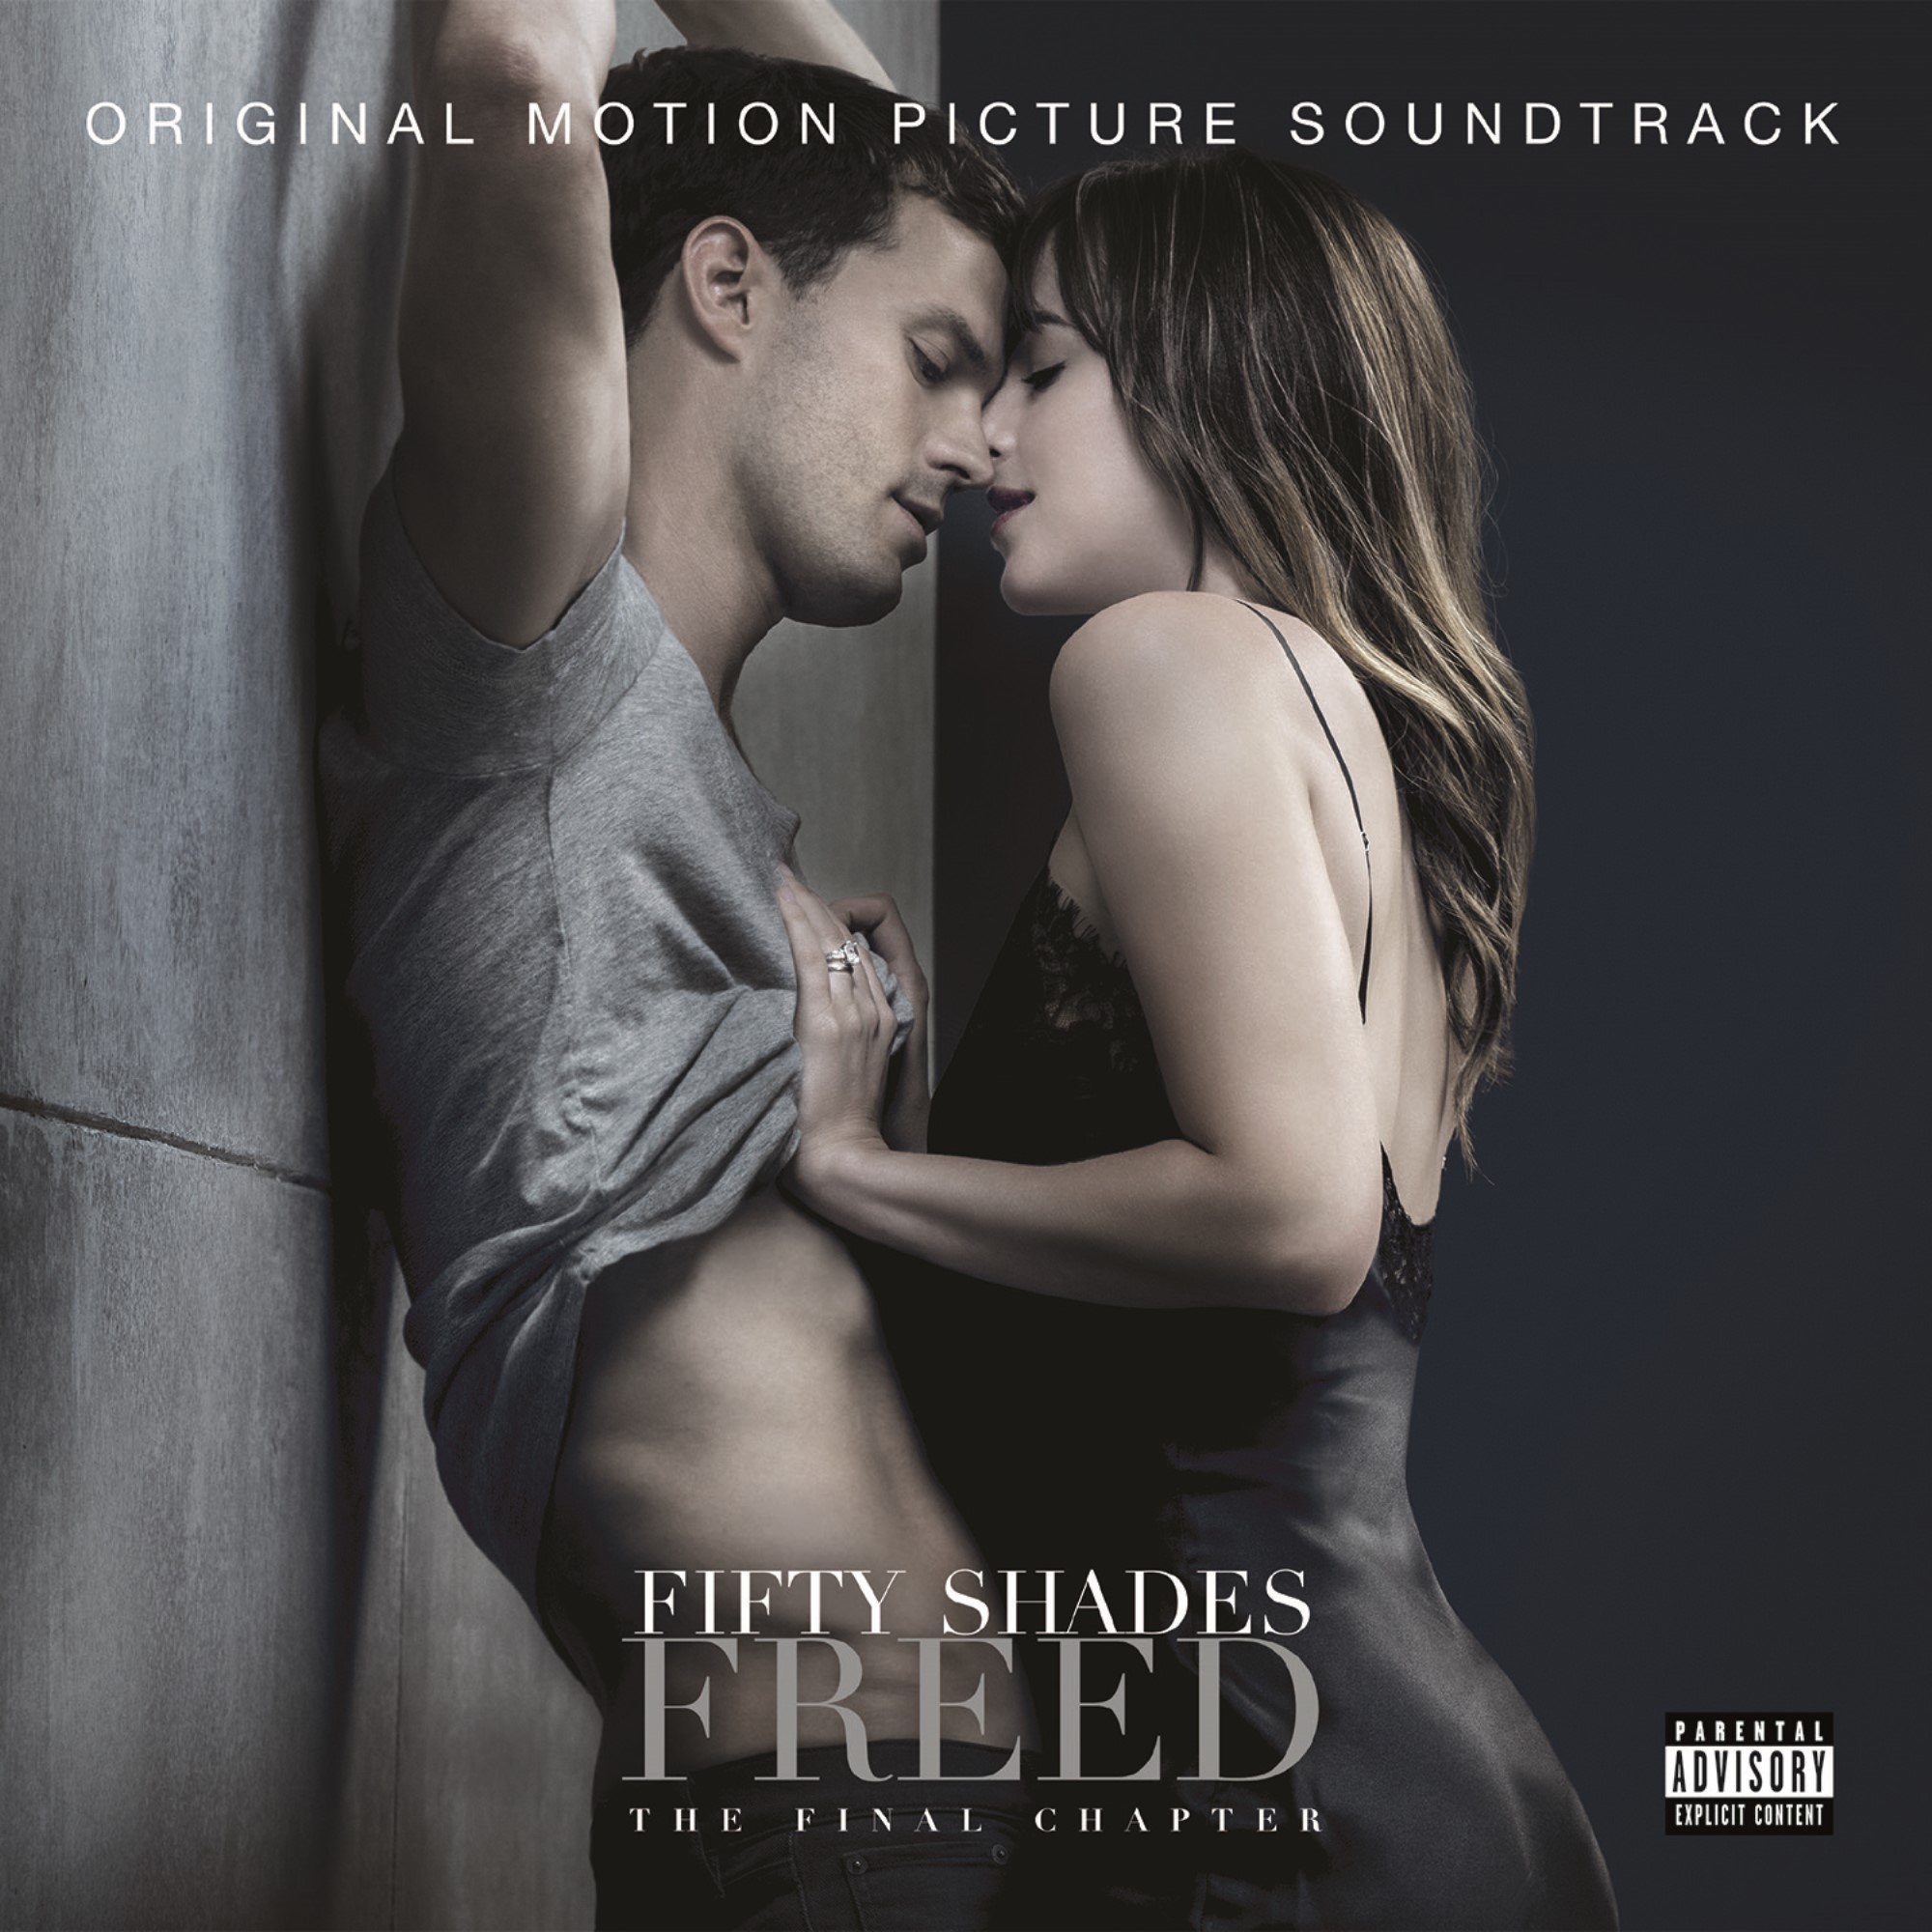 原聲帶-Fifty Shades Freed / 格雷的五十道陰影:自由